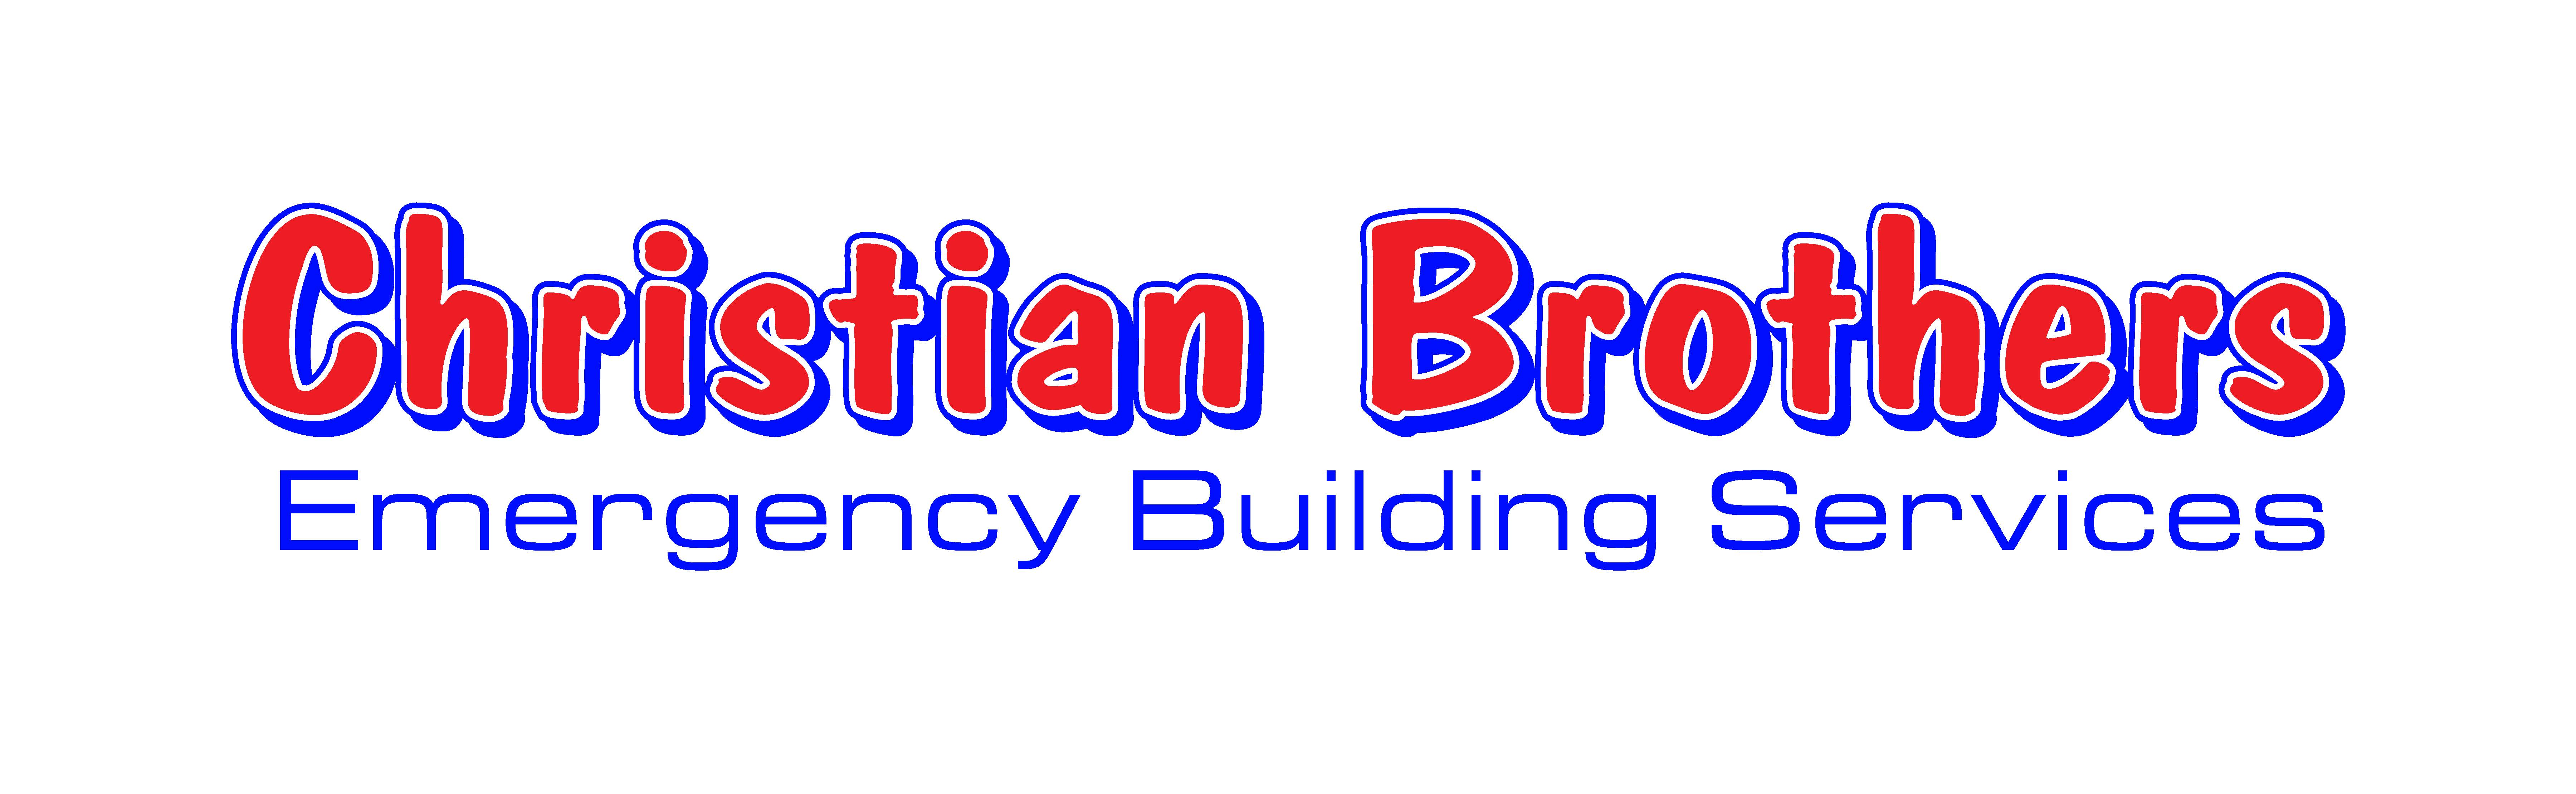 Christian Brothers Flooring & Interiors